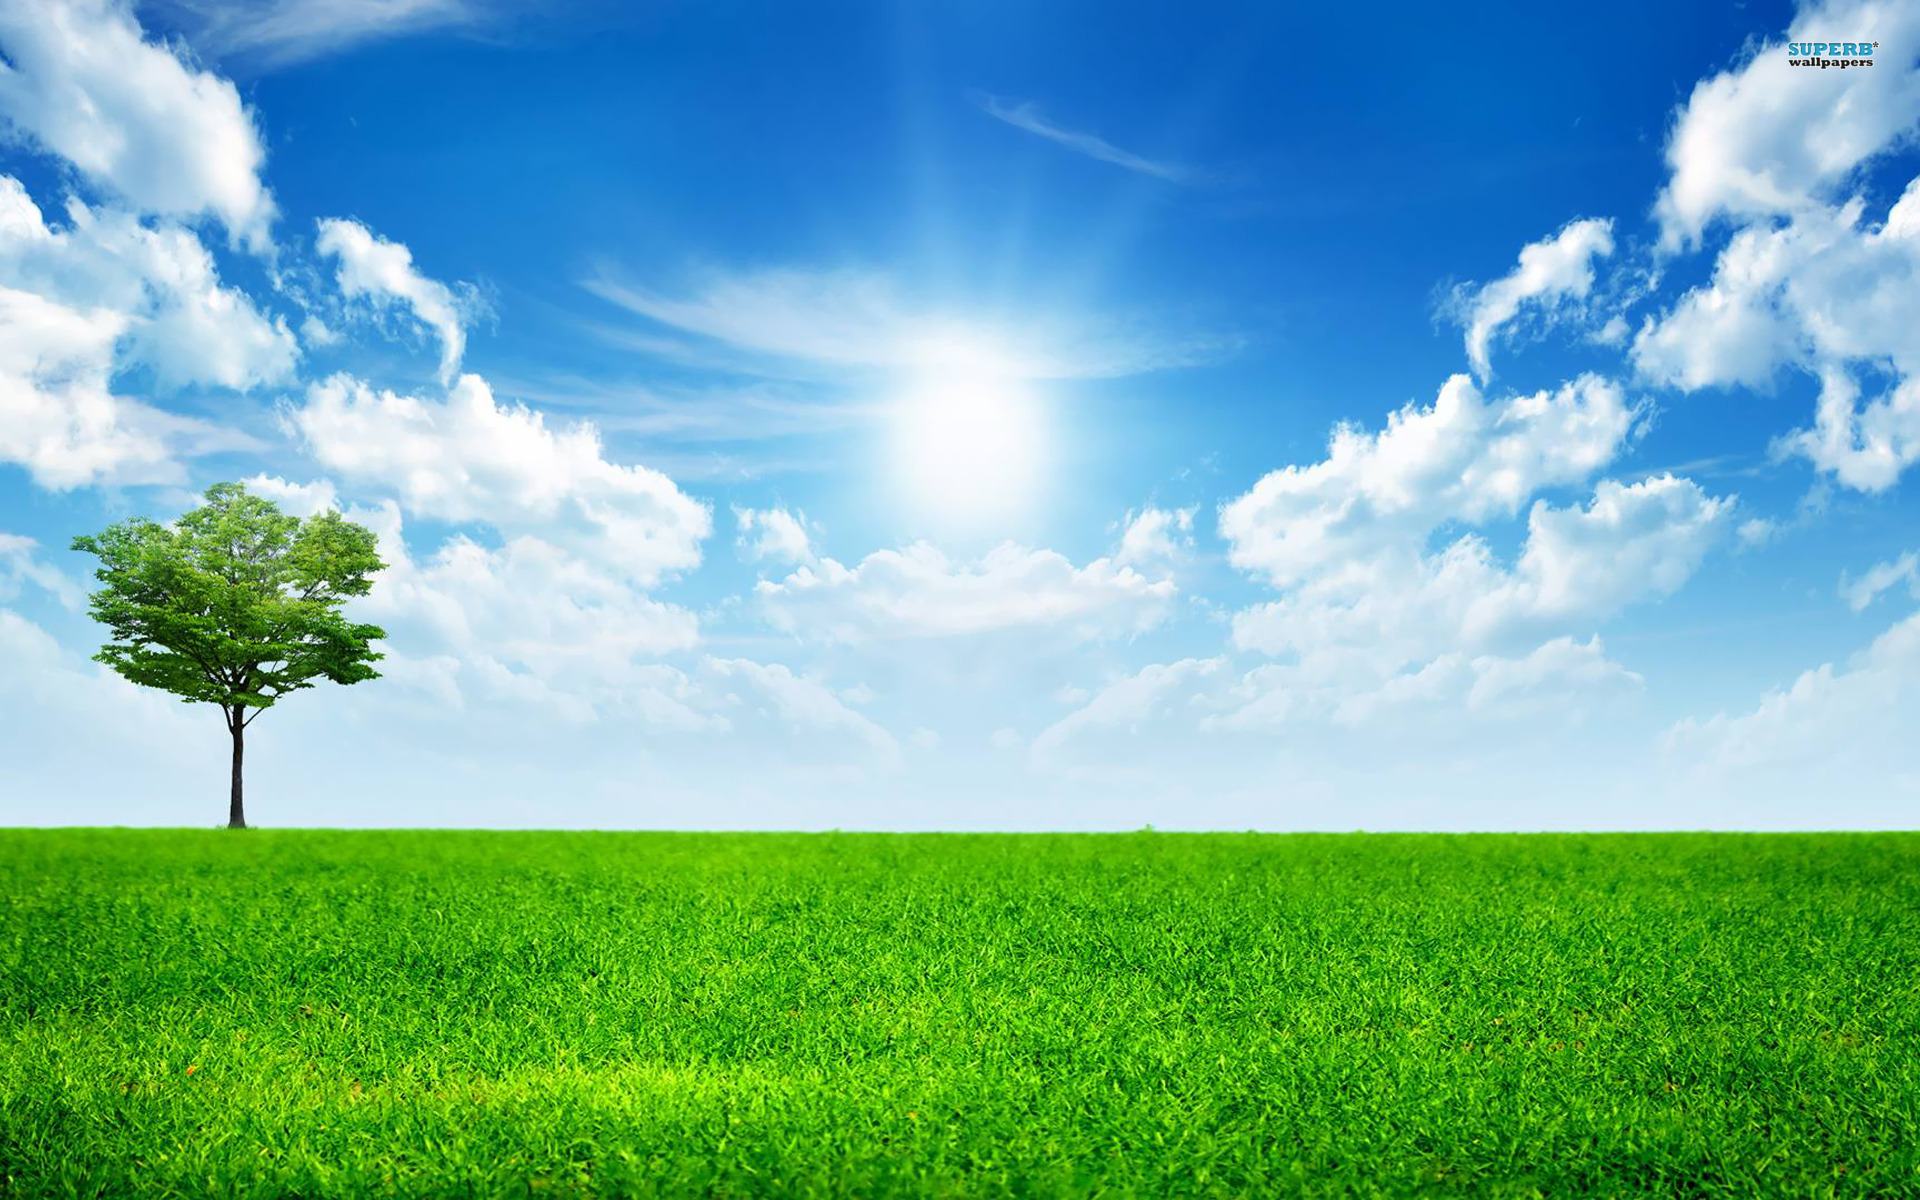 A Bright Sunny Day wallpaper